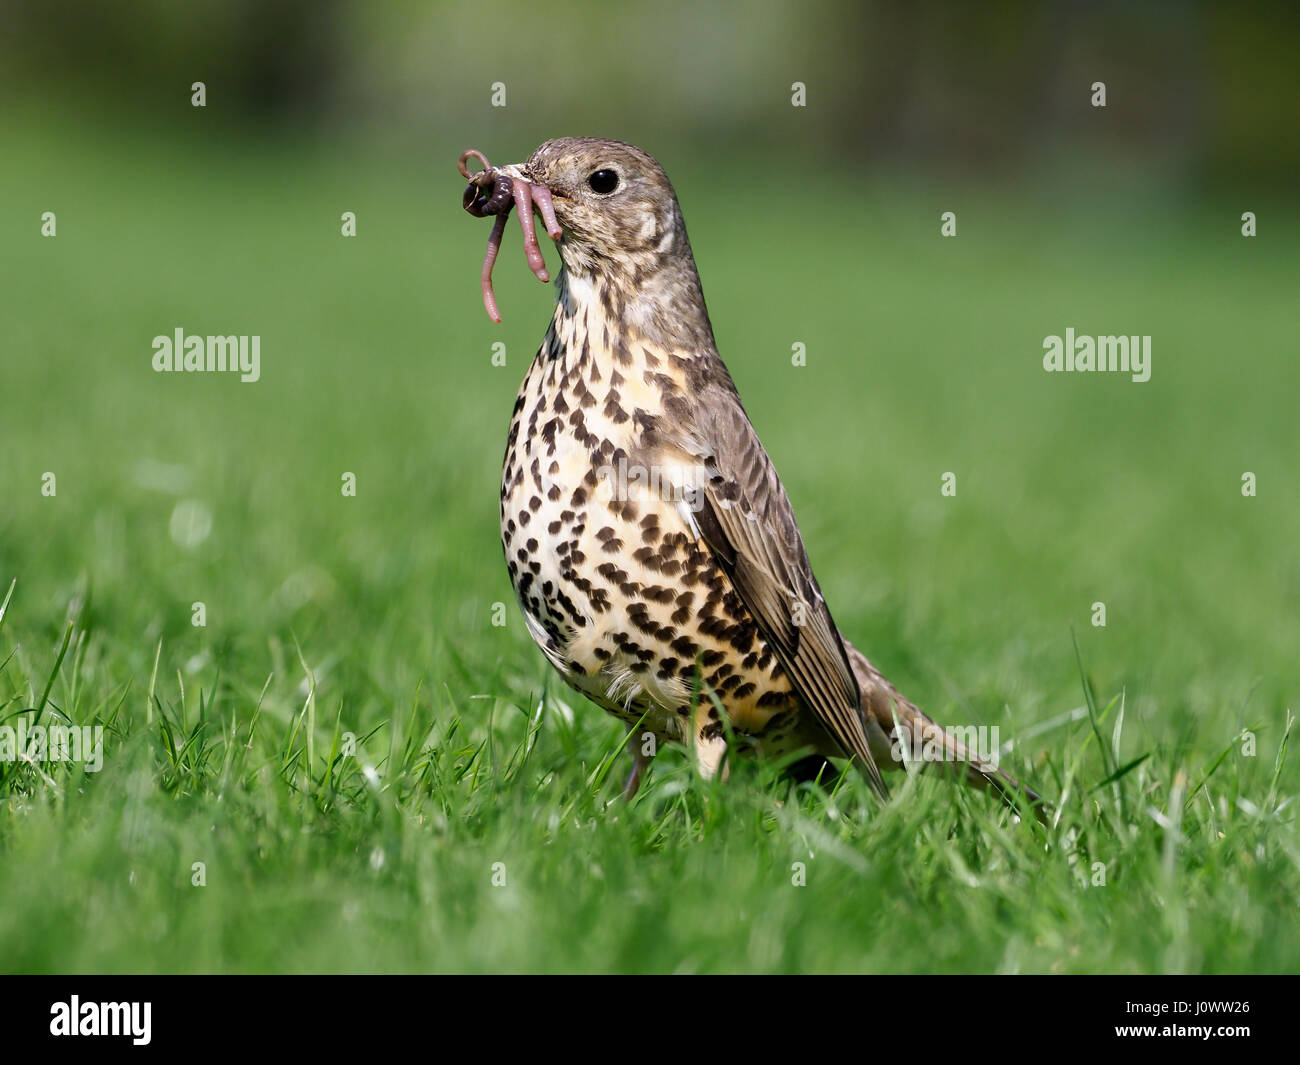 Mistle thrush, Turdus viscivorus, single bird on grass with worms, Warwickshire, April 2017 - Stock Image